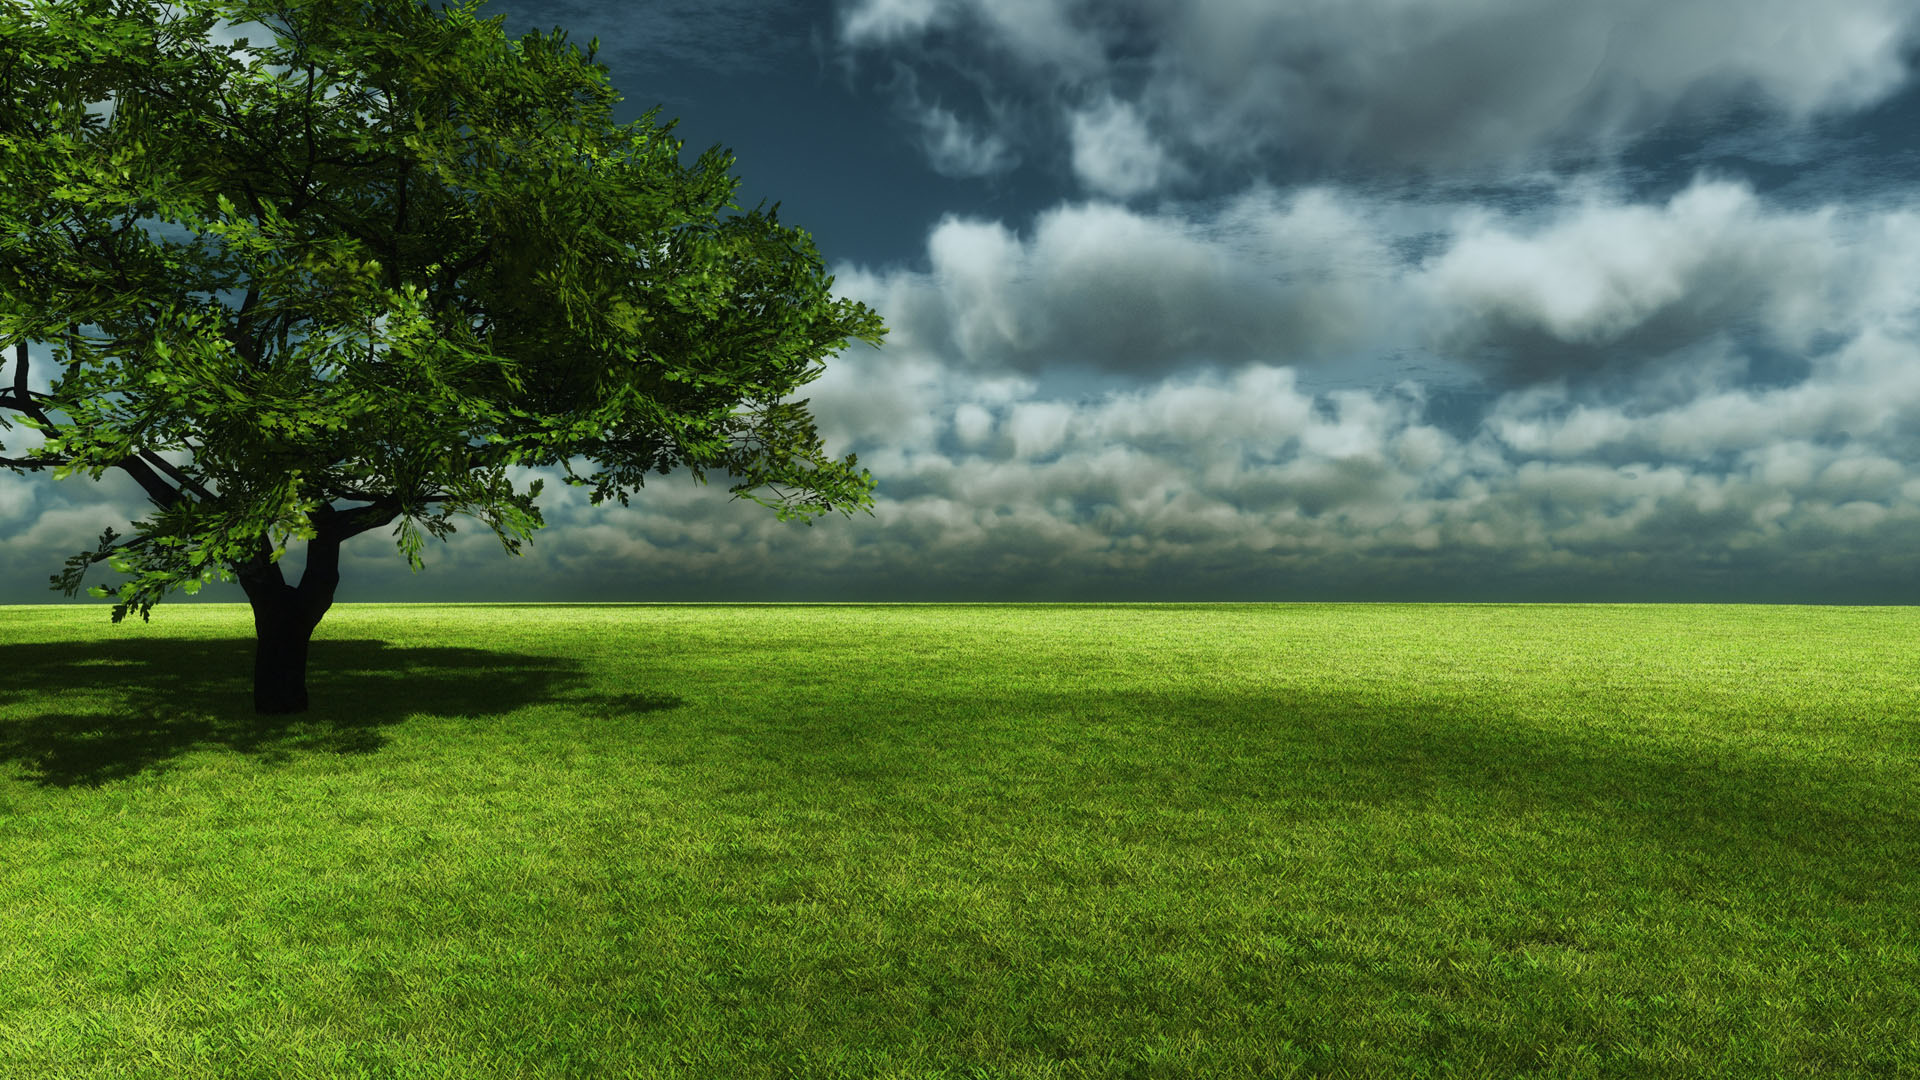 Natural Grass Wallpaper Free Download Natural Scenery